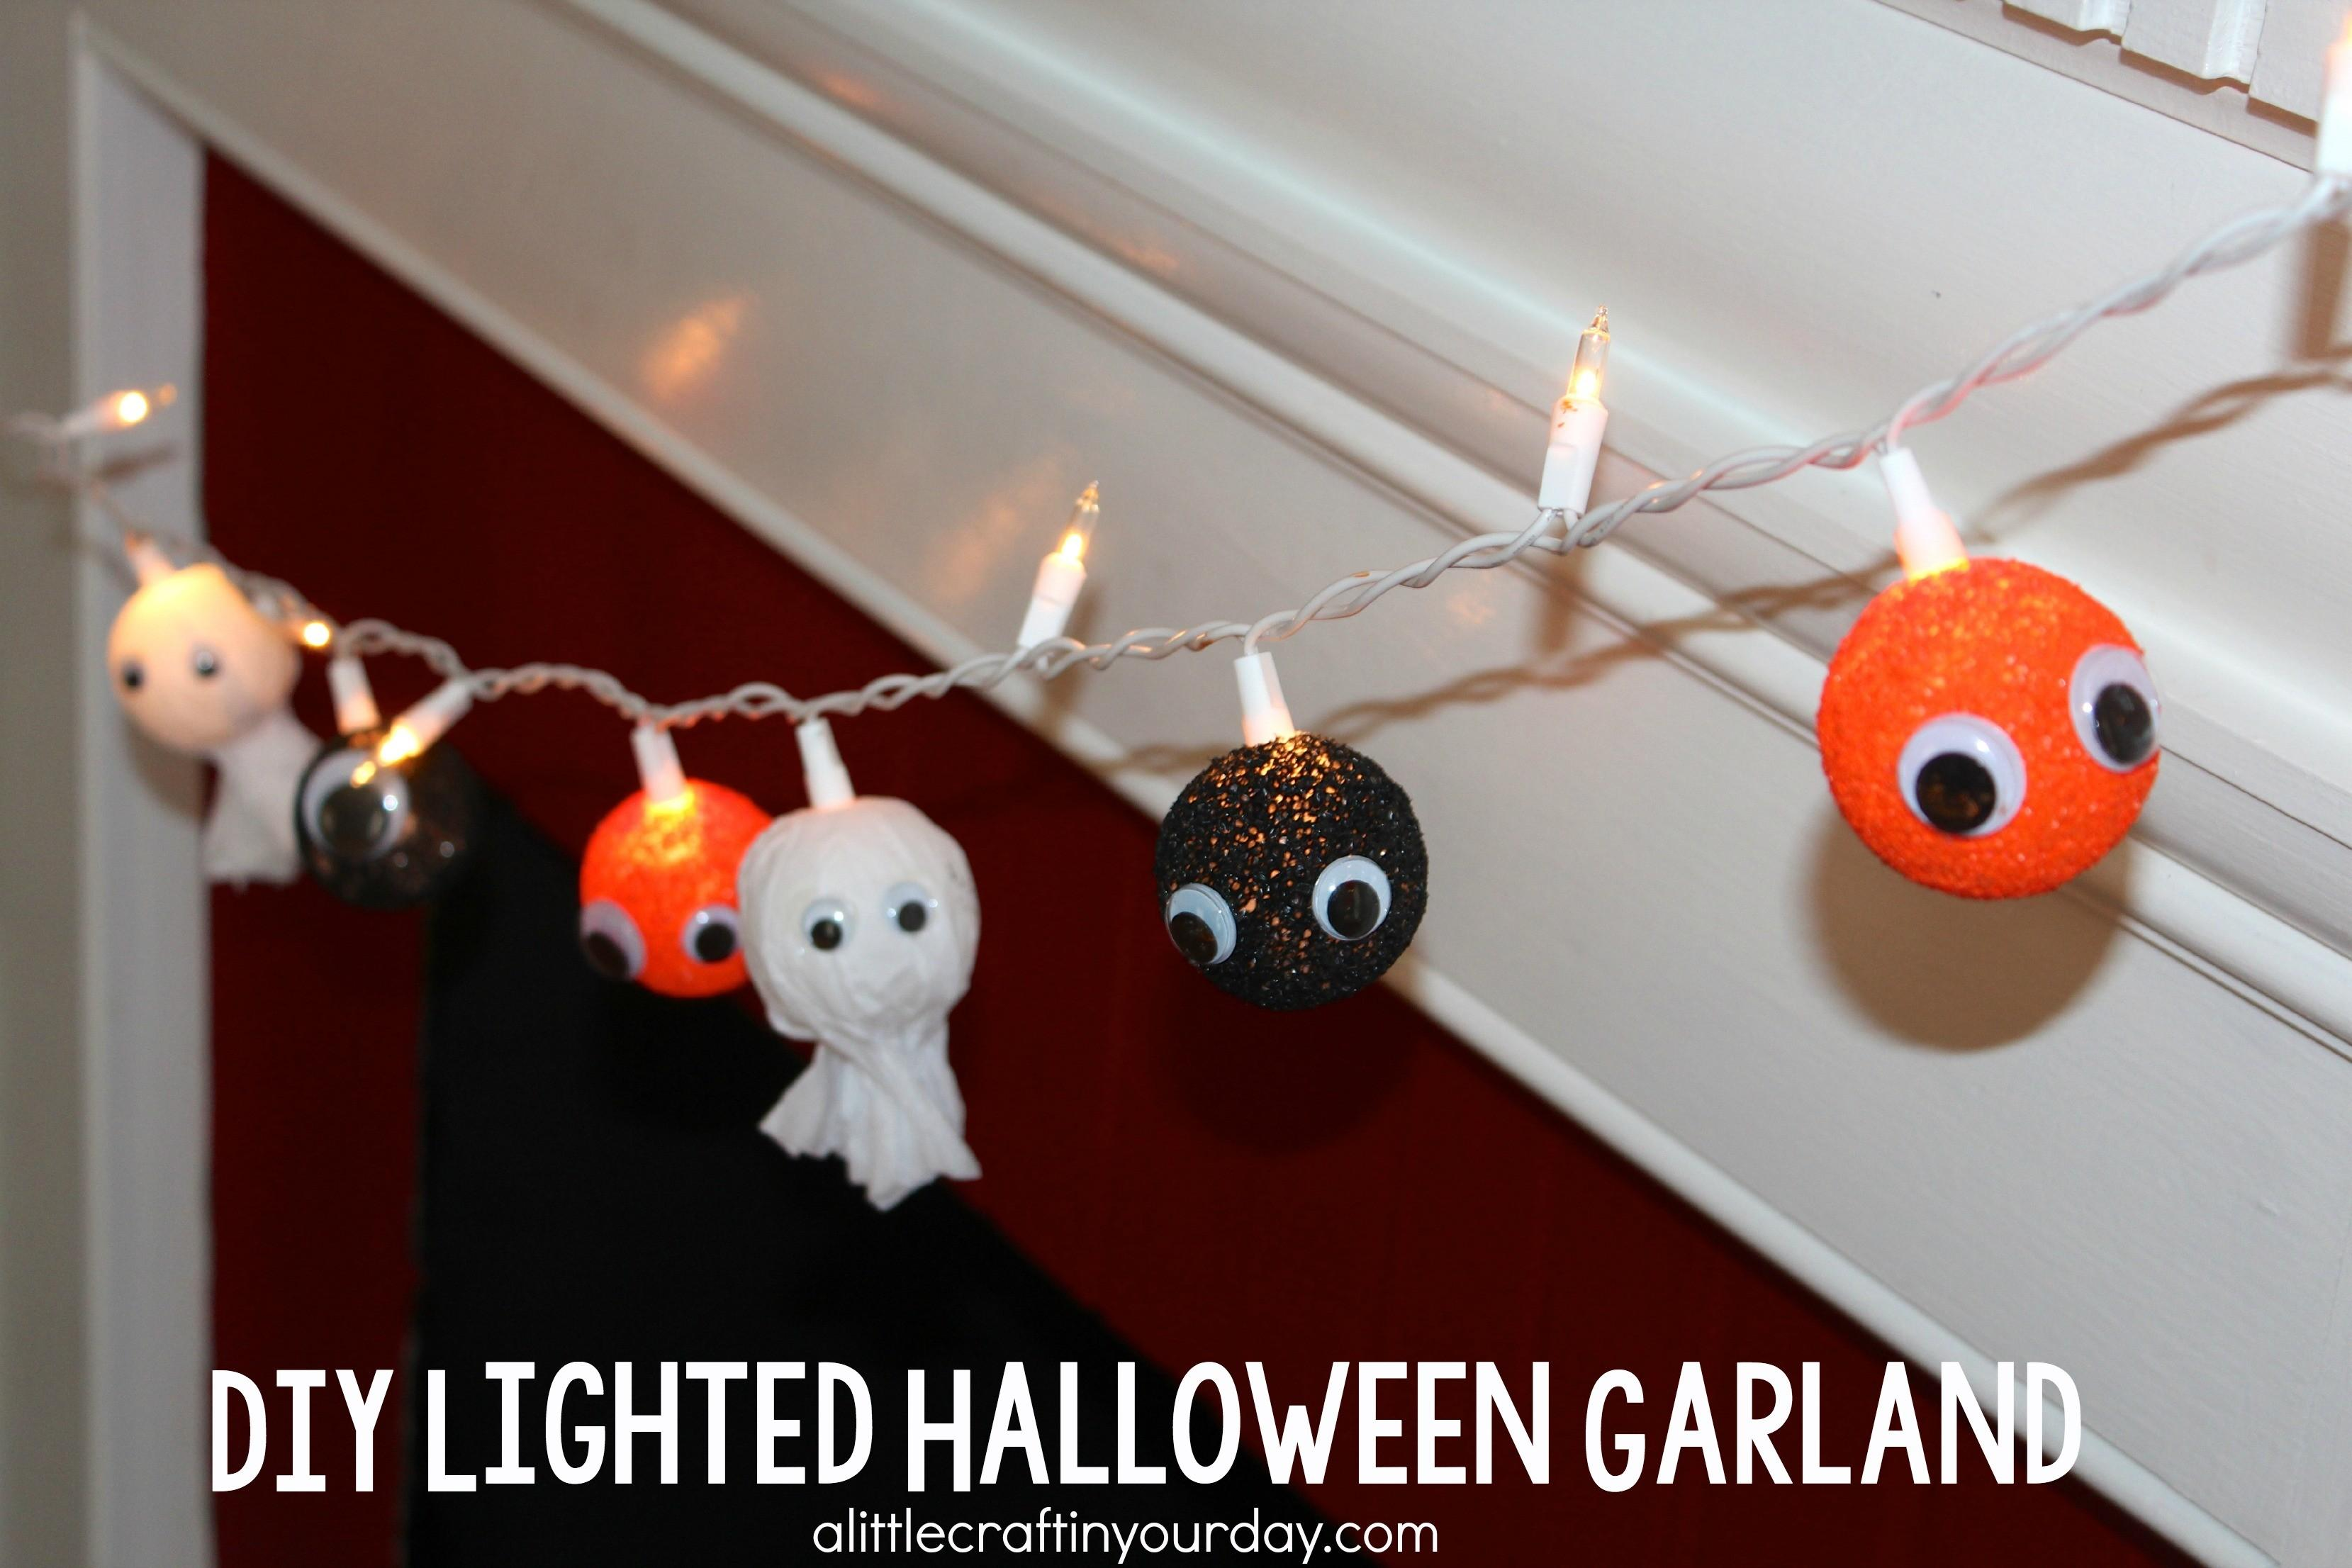 Diy Lighted Halloween Garland Little Craft Your Day